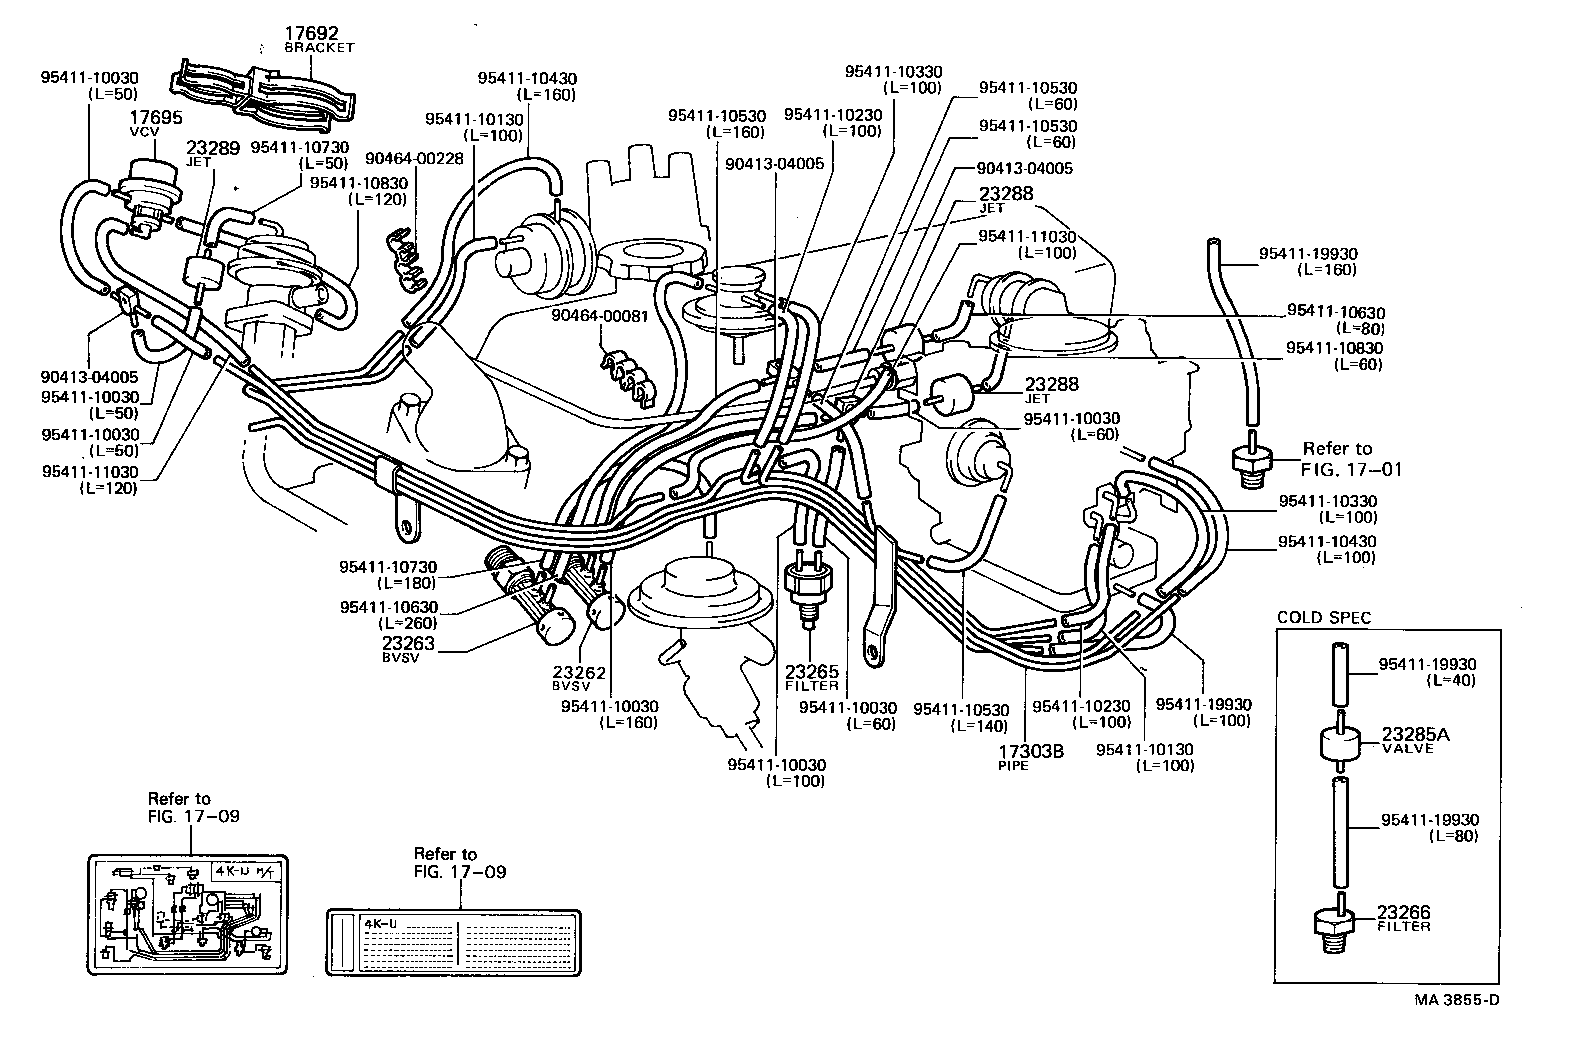 2010 Toyota Corolla Engine Diagram - Wiring Diagram Mega on radio transmission diagram, radio harness diagram, radio schematic diagrams, 2005 mazda 6 radio diagram, nissan 300zx diagram, circuit diagram, radio block diagram, mitsubishi galant radio diagram,